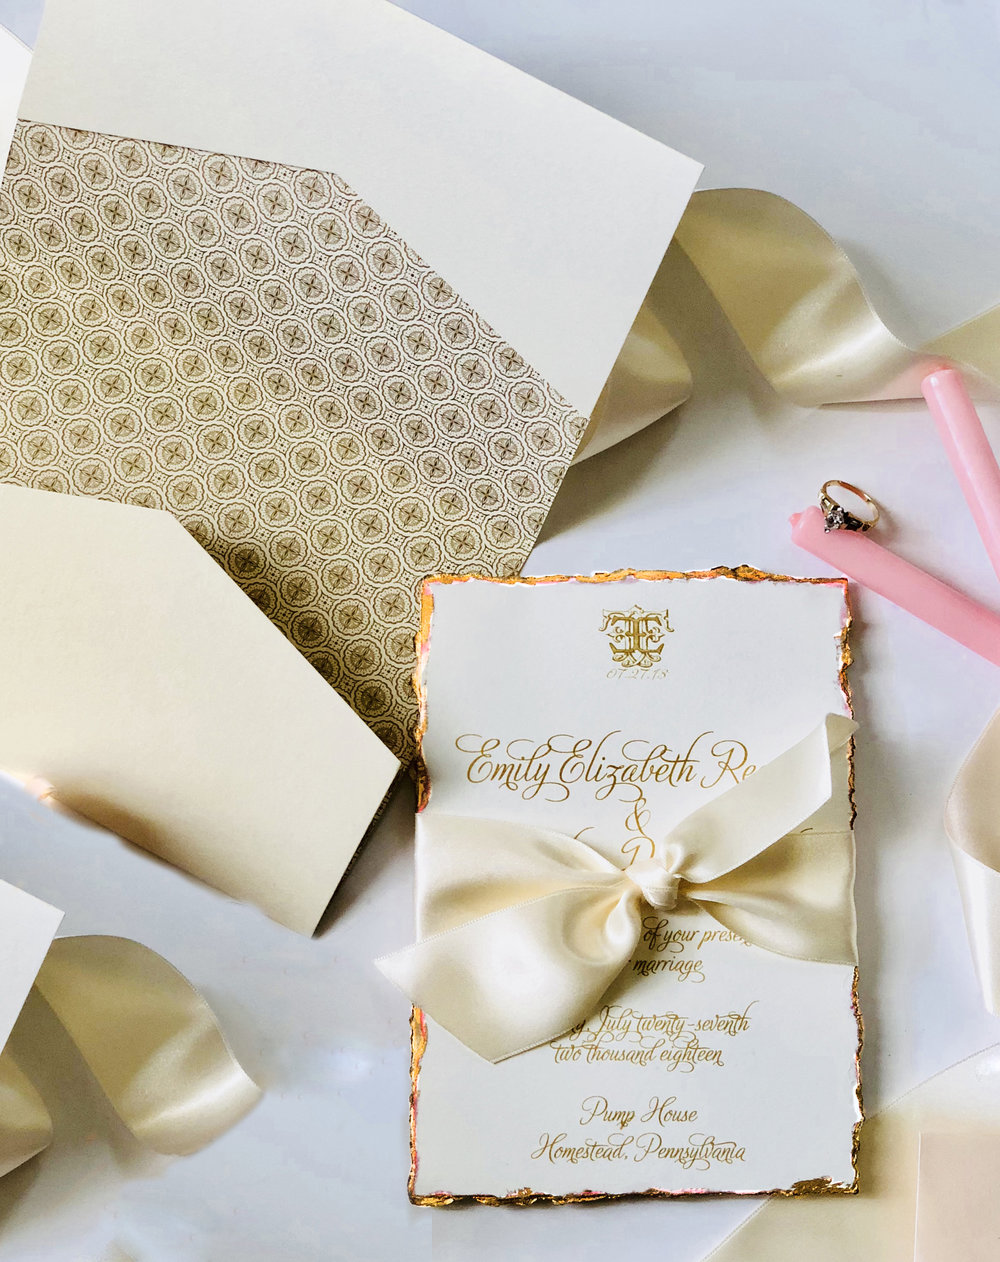 Handmade Paper  Our Deckled and Dipped Collection is one of our most romantic styles. Created with handcrafted paper and deckled to perfection. With beautiful gold edges, this style screams luxury and elegance.